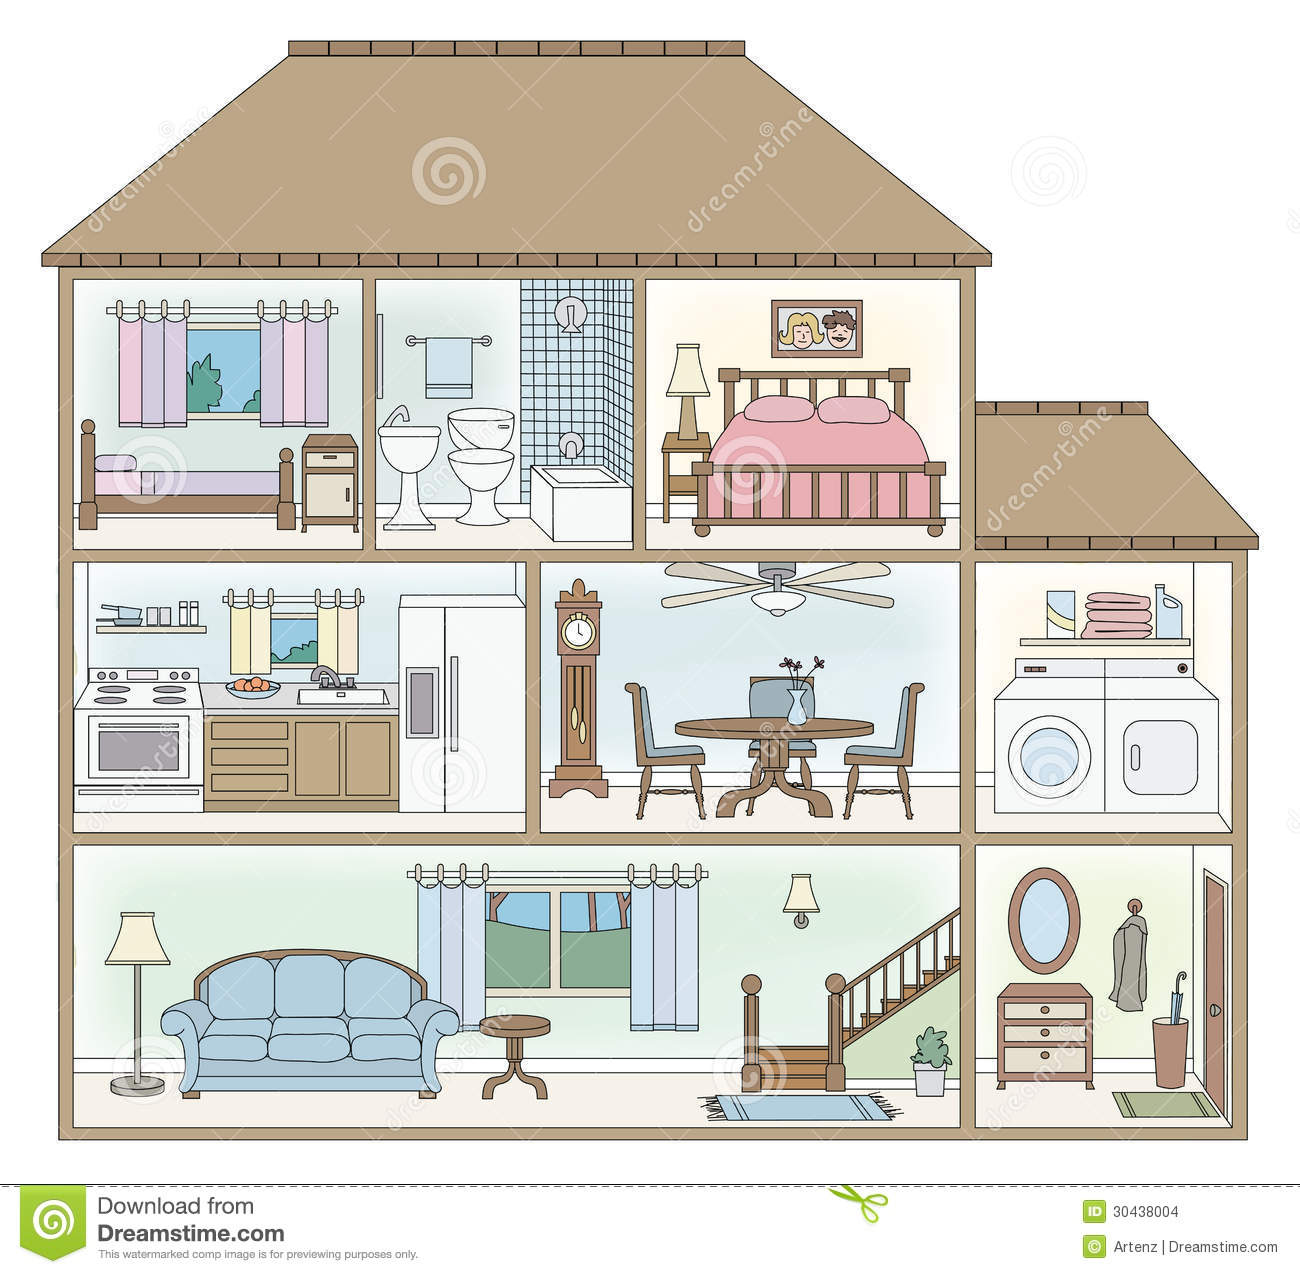 2 Story House Clipart.